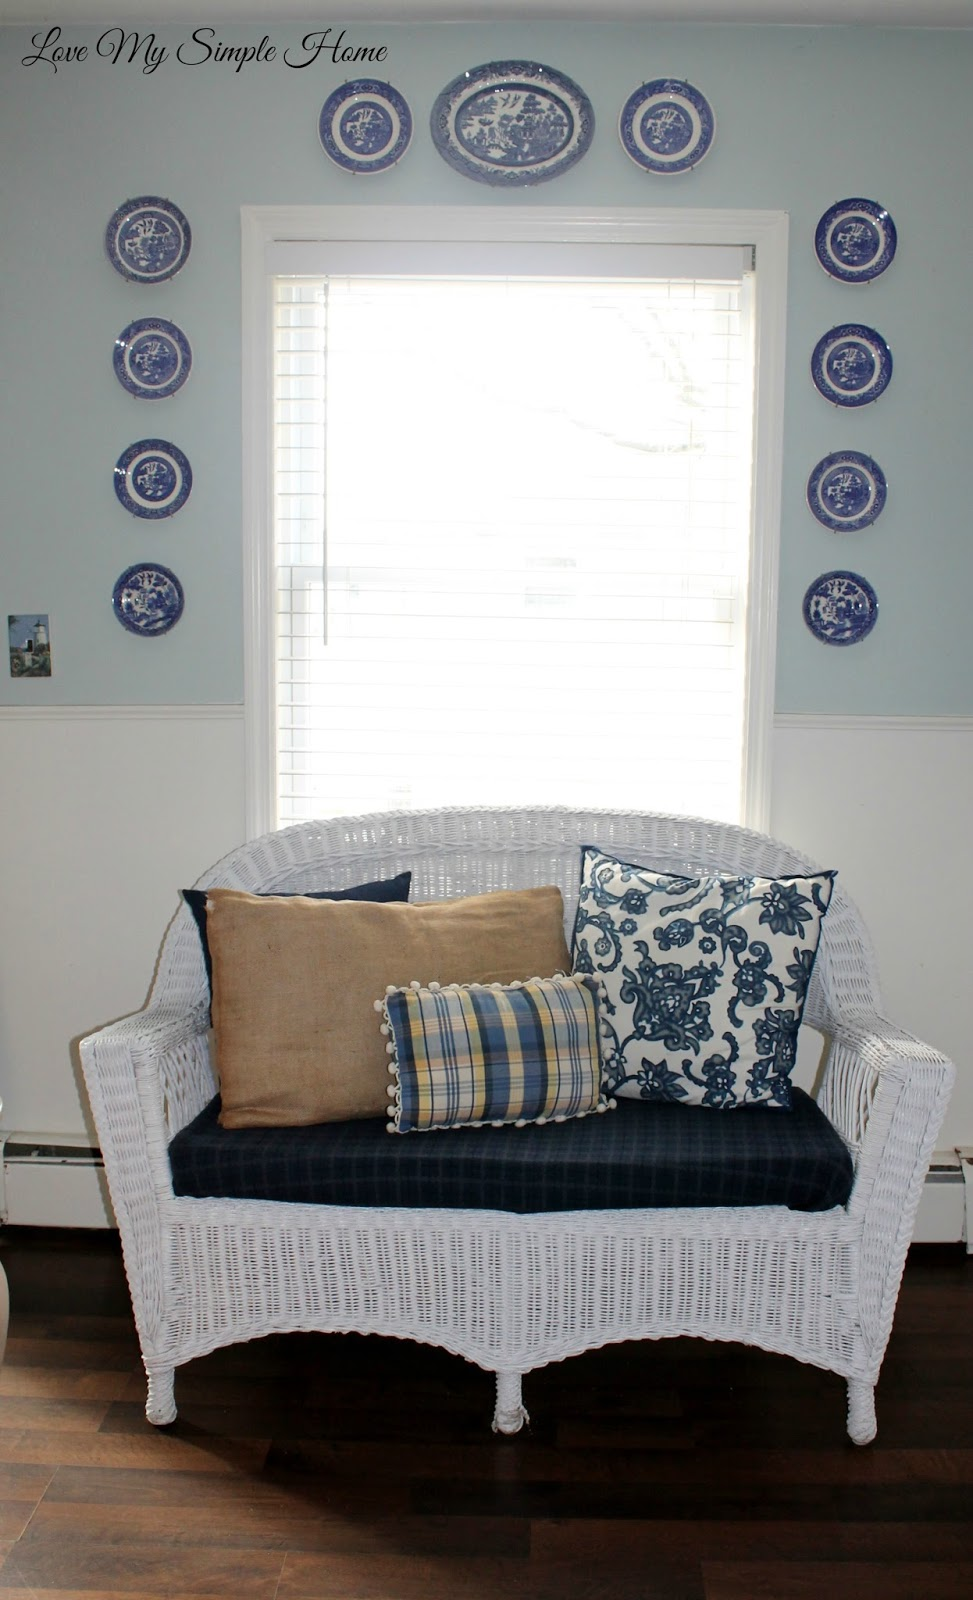 Decorate with white wicker furniture for winter | Love My ...